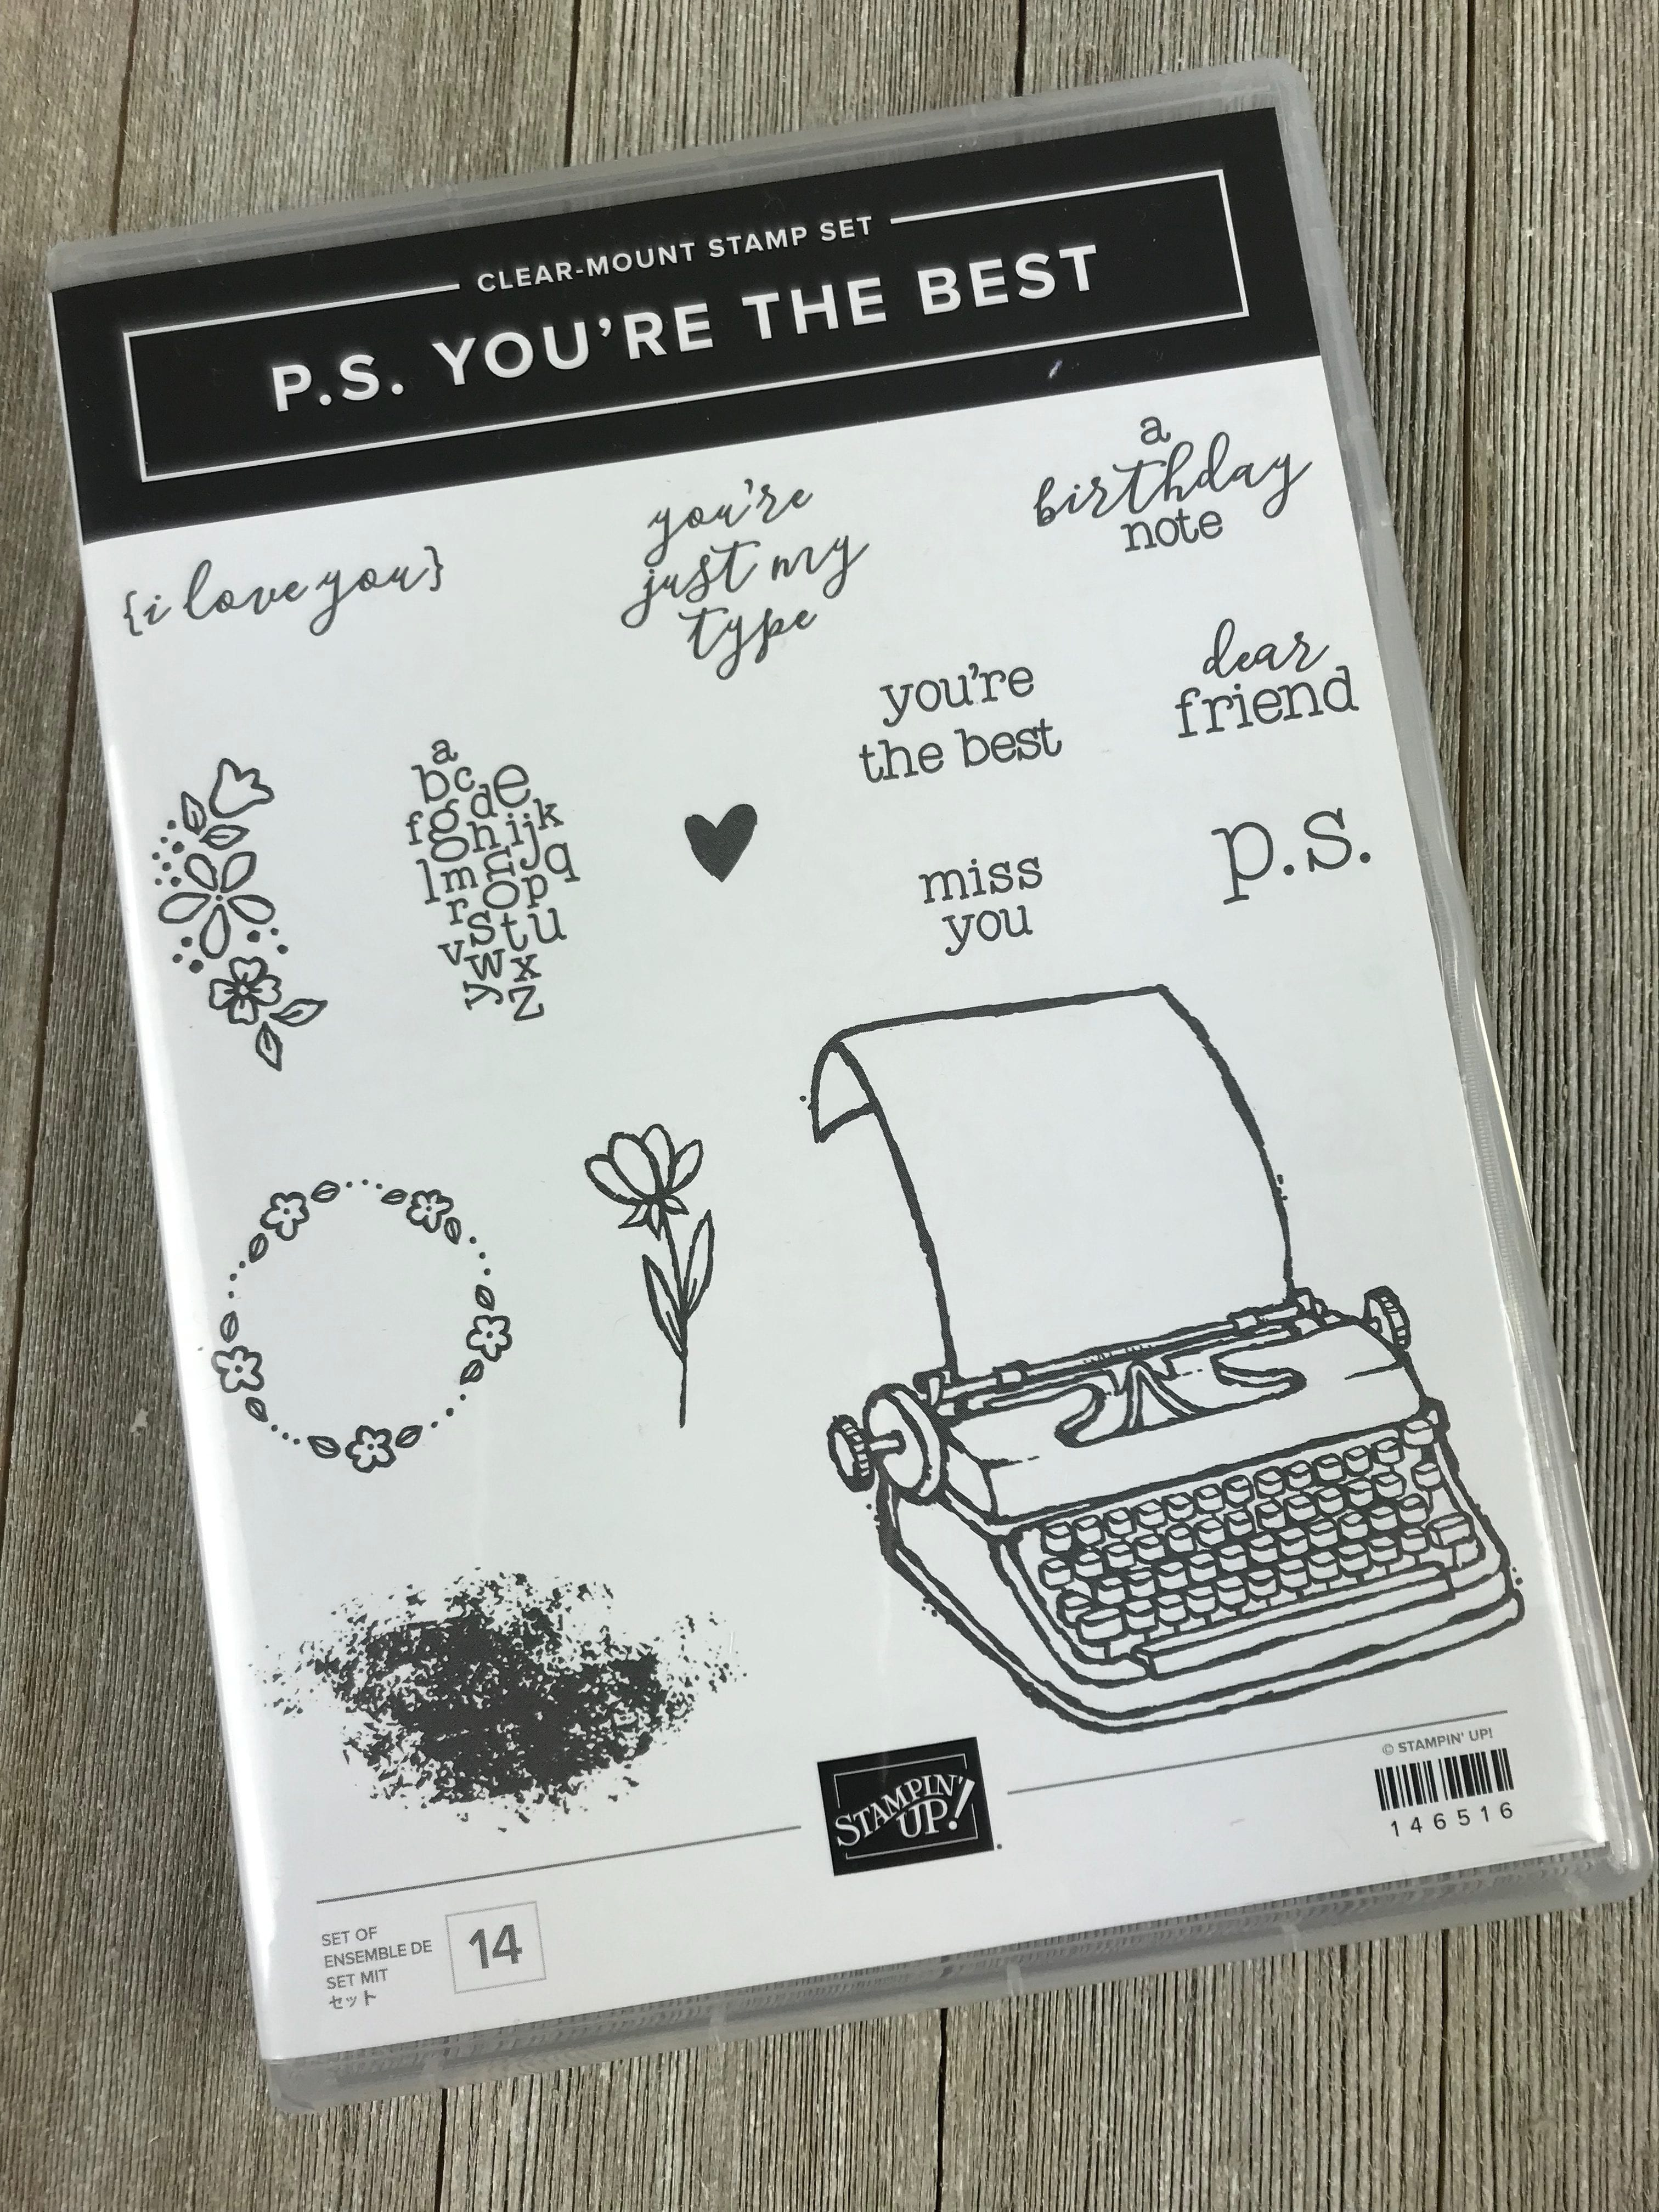 Alaska Bound – Day 9 – Stampin' Up! P.S. You're the Best Stamp Set Giveaway